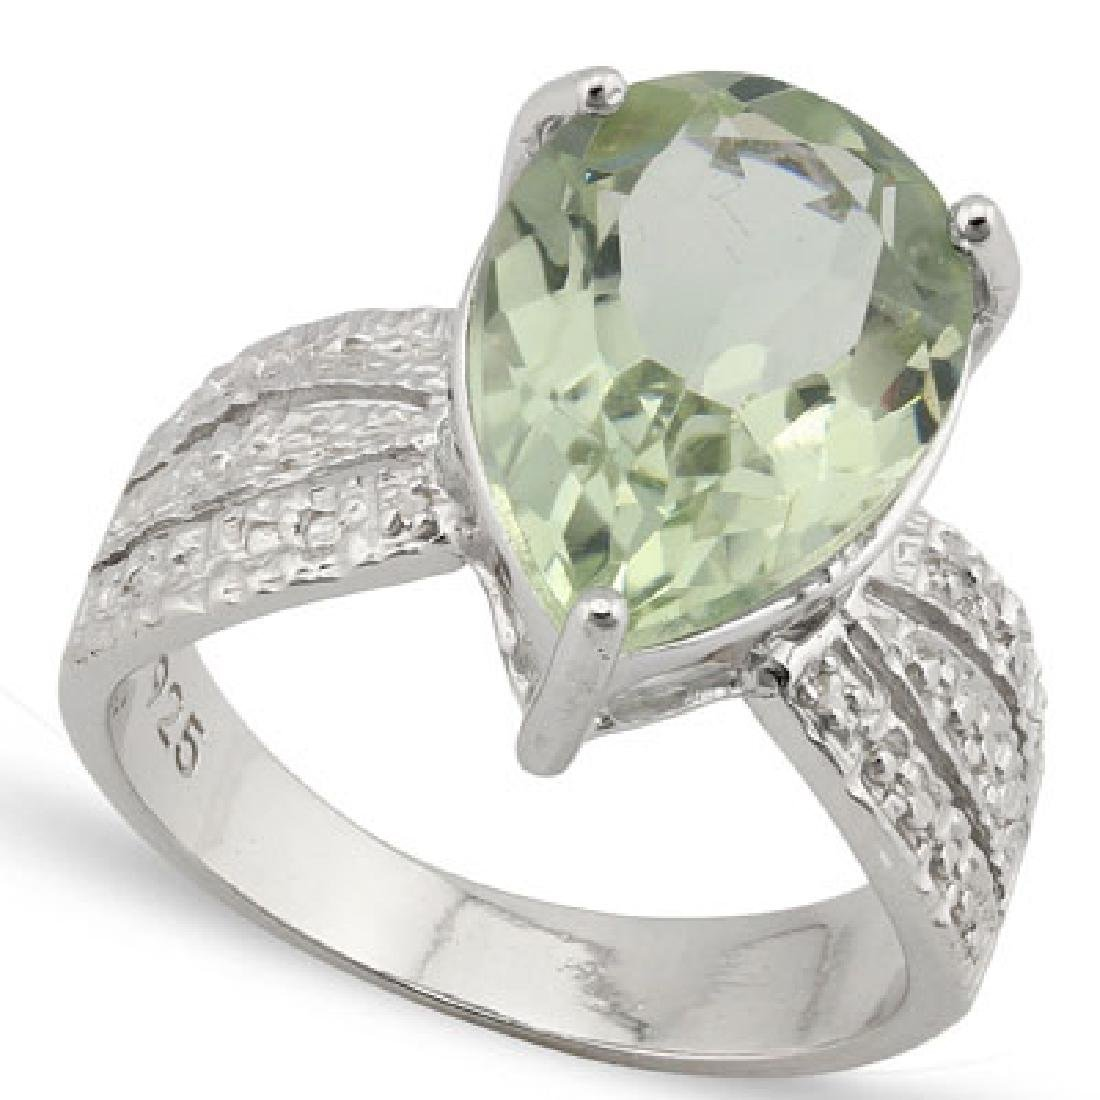 4.533 CARAT TW GREEN AMETHYST & GENUINE DIAMOND PLATINU